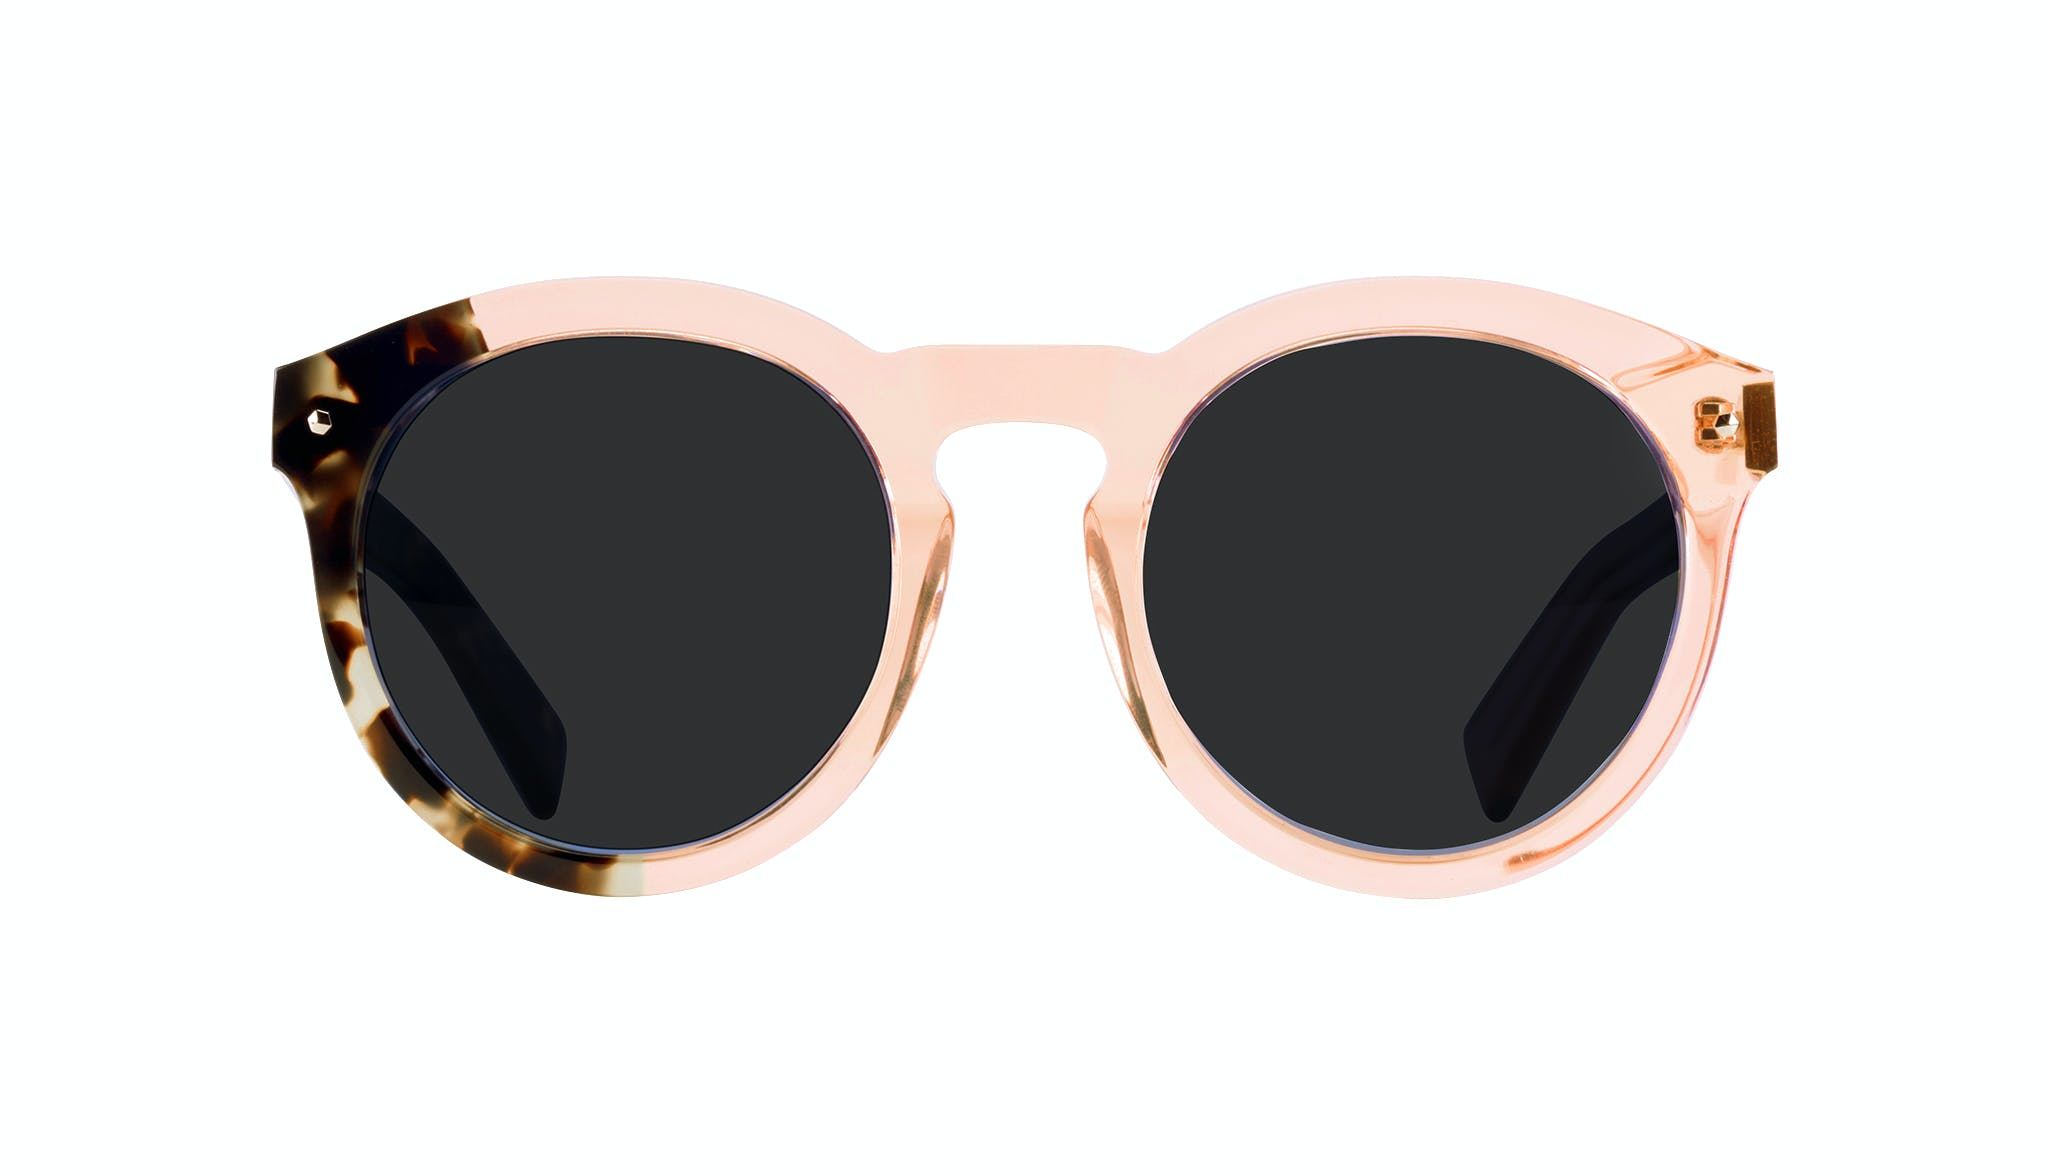 Affordable Fashion Glasses Round Sunglasses Women Mood Peach